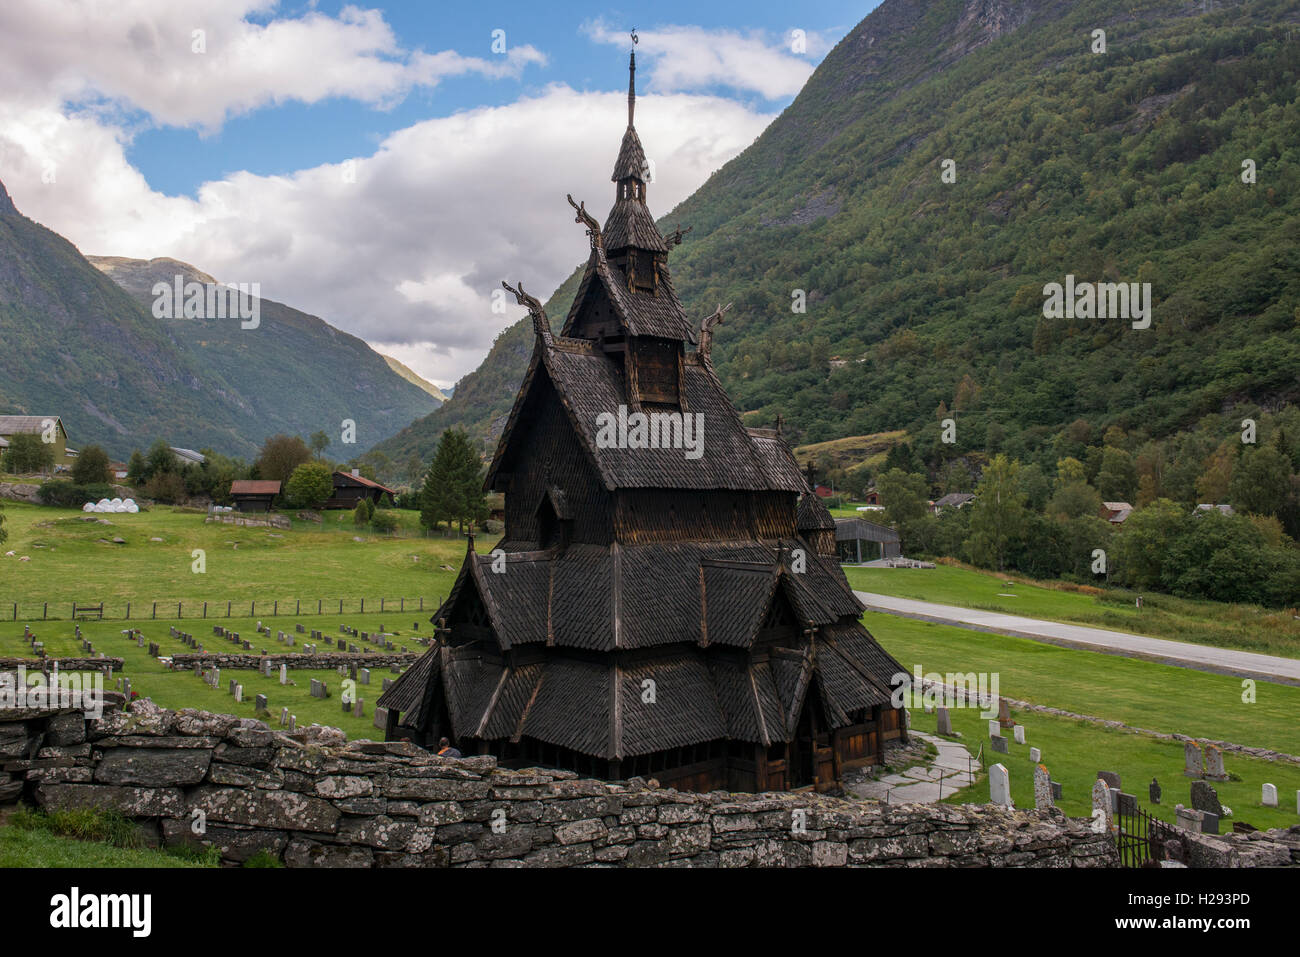 Borgund Stave Church Aka Laerdal Borgund Stavkirke. Built Without Any Nails  Or Metal In 1150.